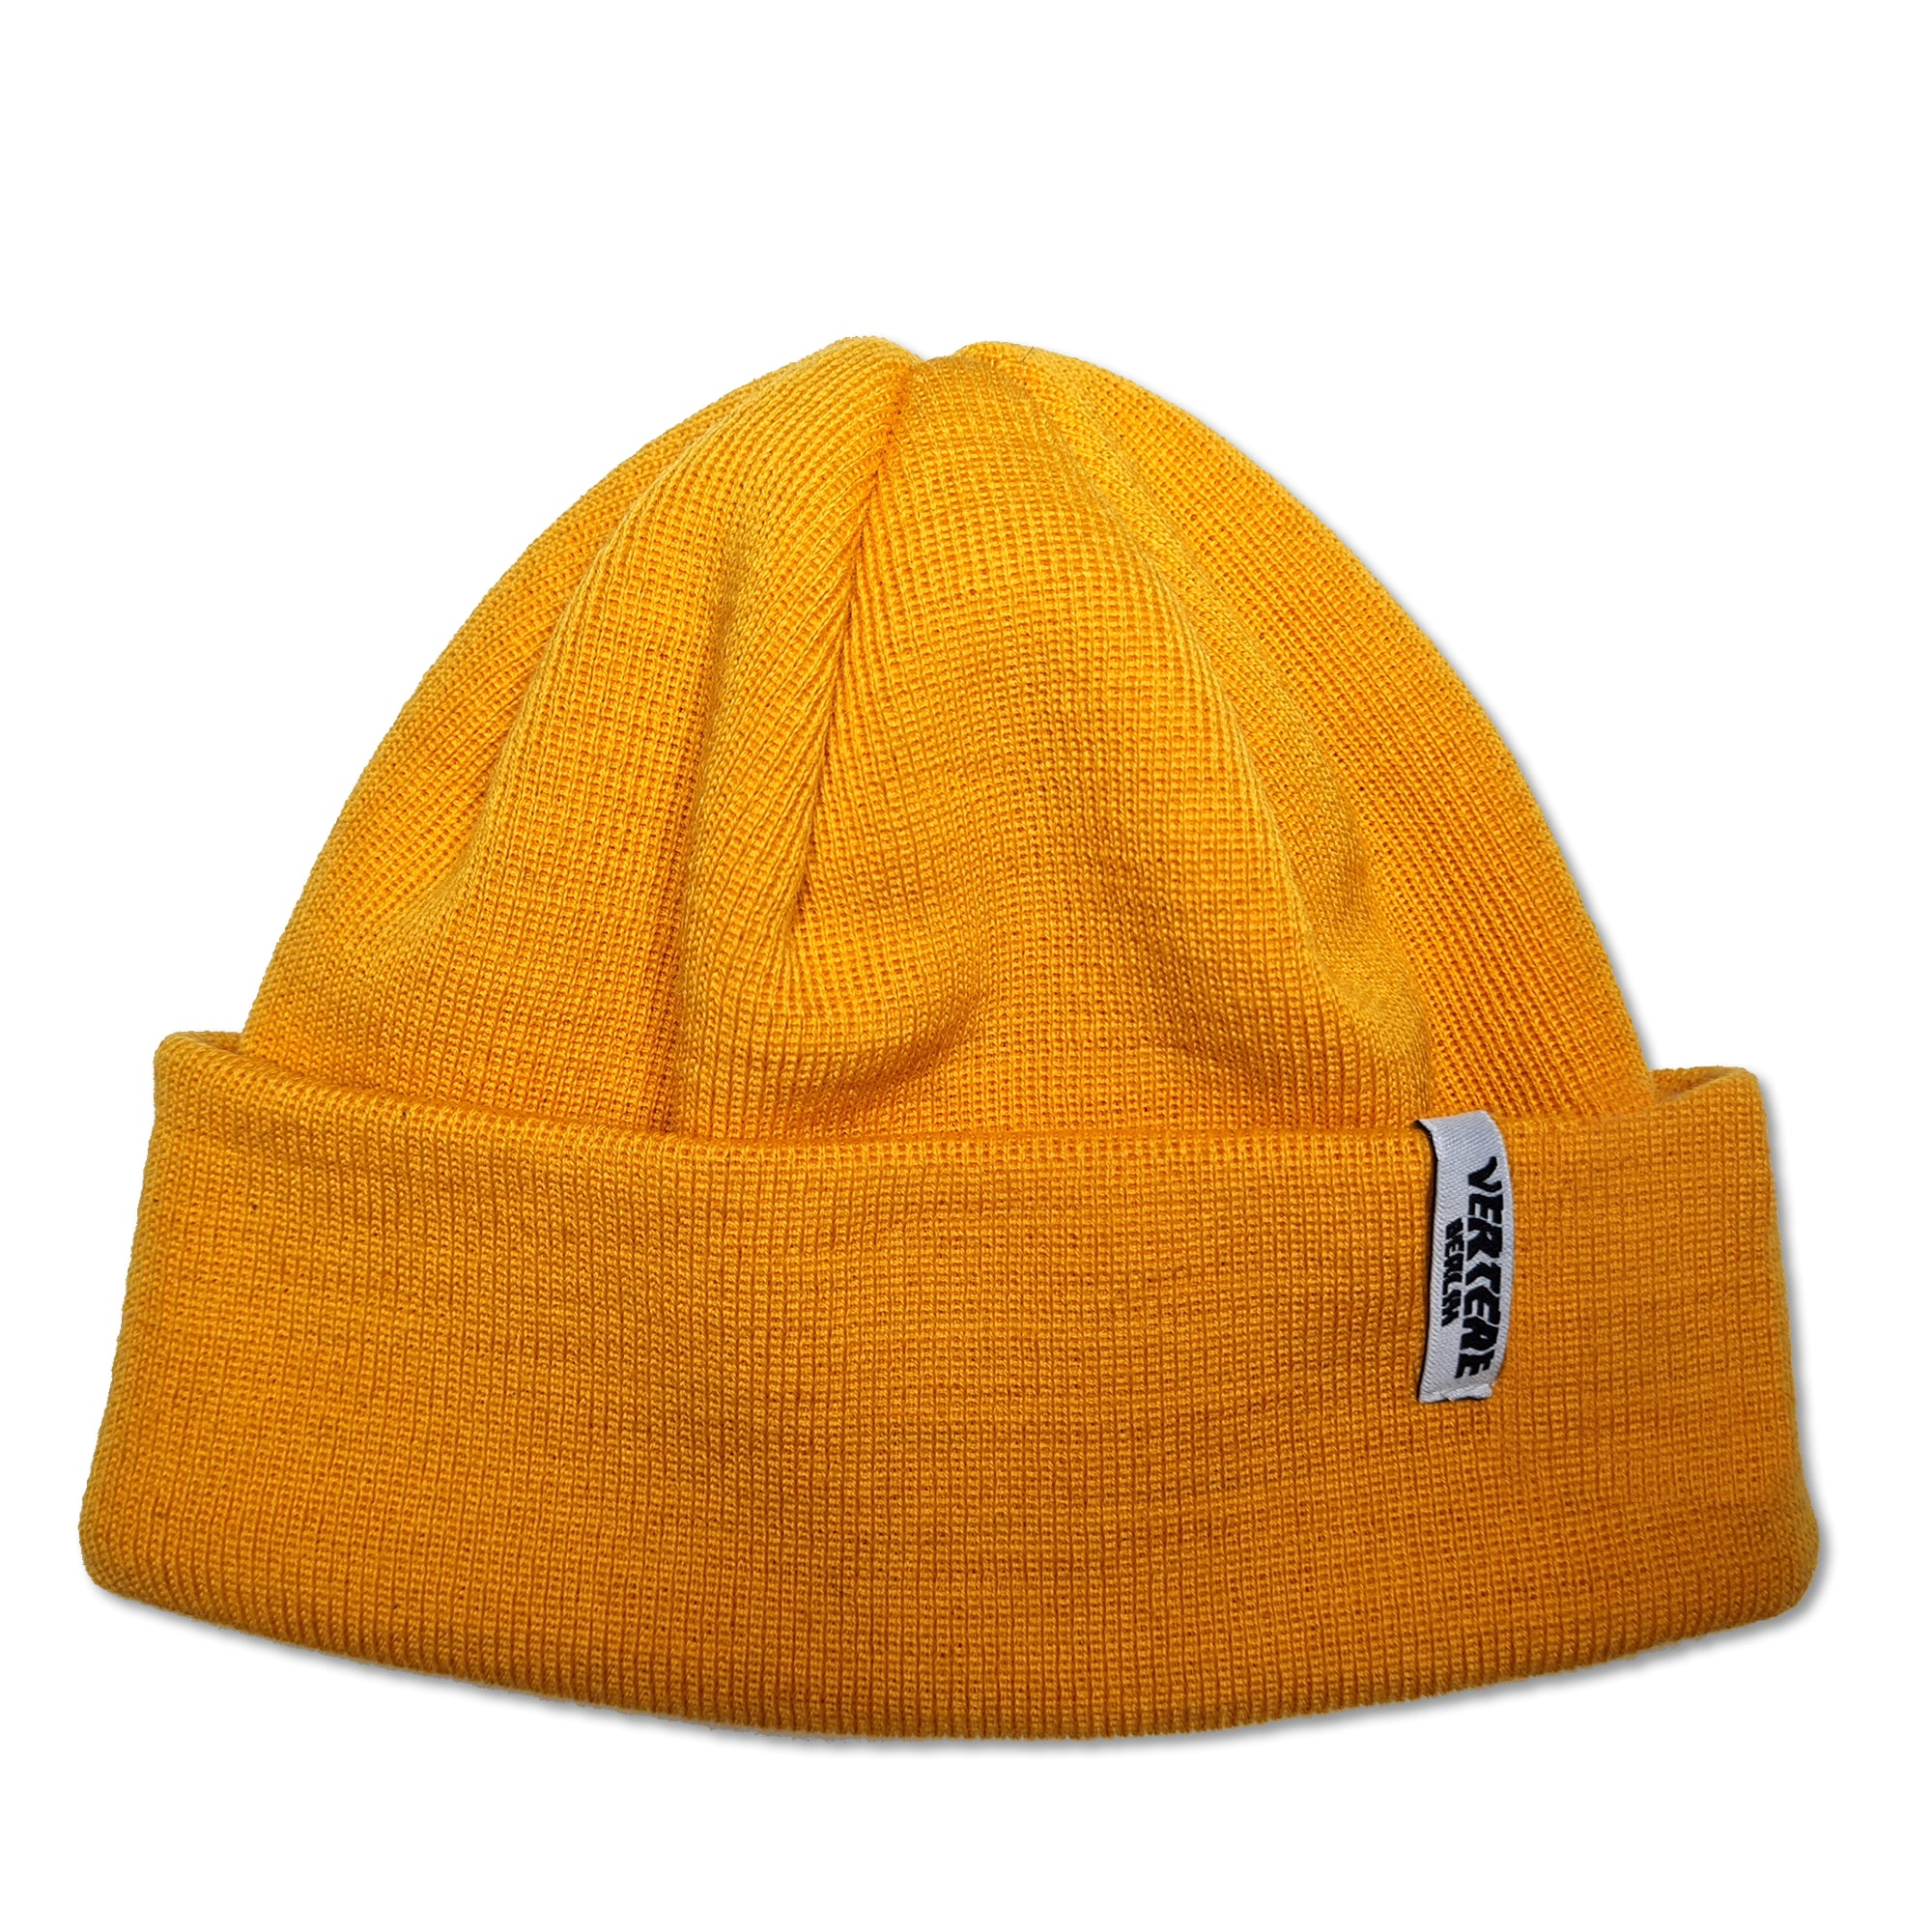 SHORT WOOL FINE KNIT BEANIE CITY - YELLOW